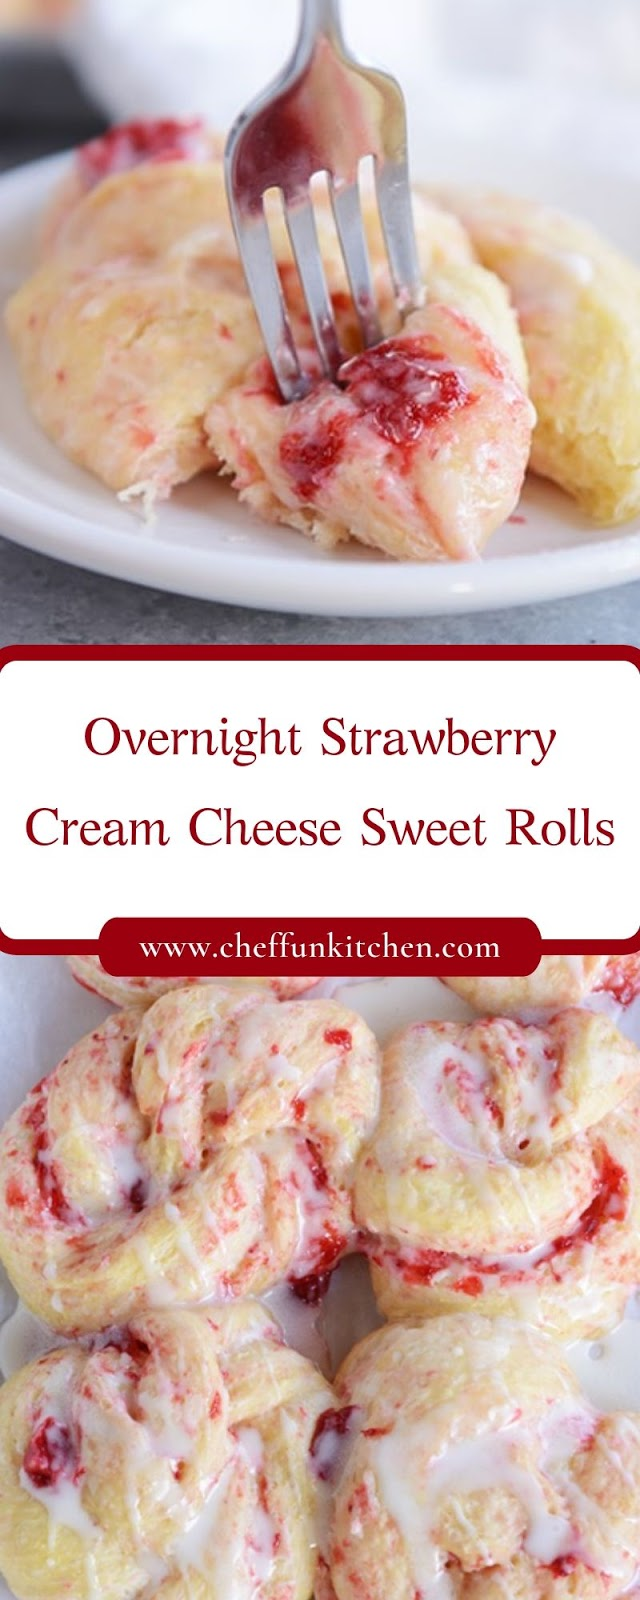 Overnight Strawberry Cream Cheese Sweet Rolls